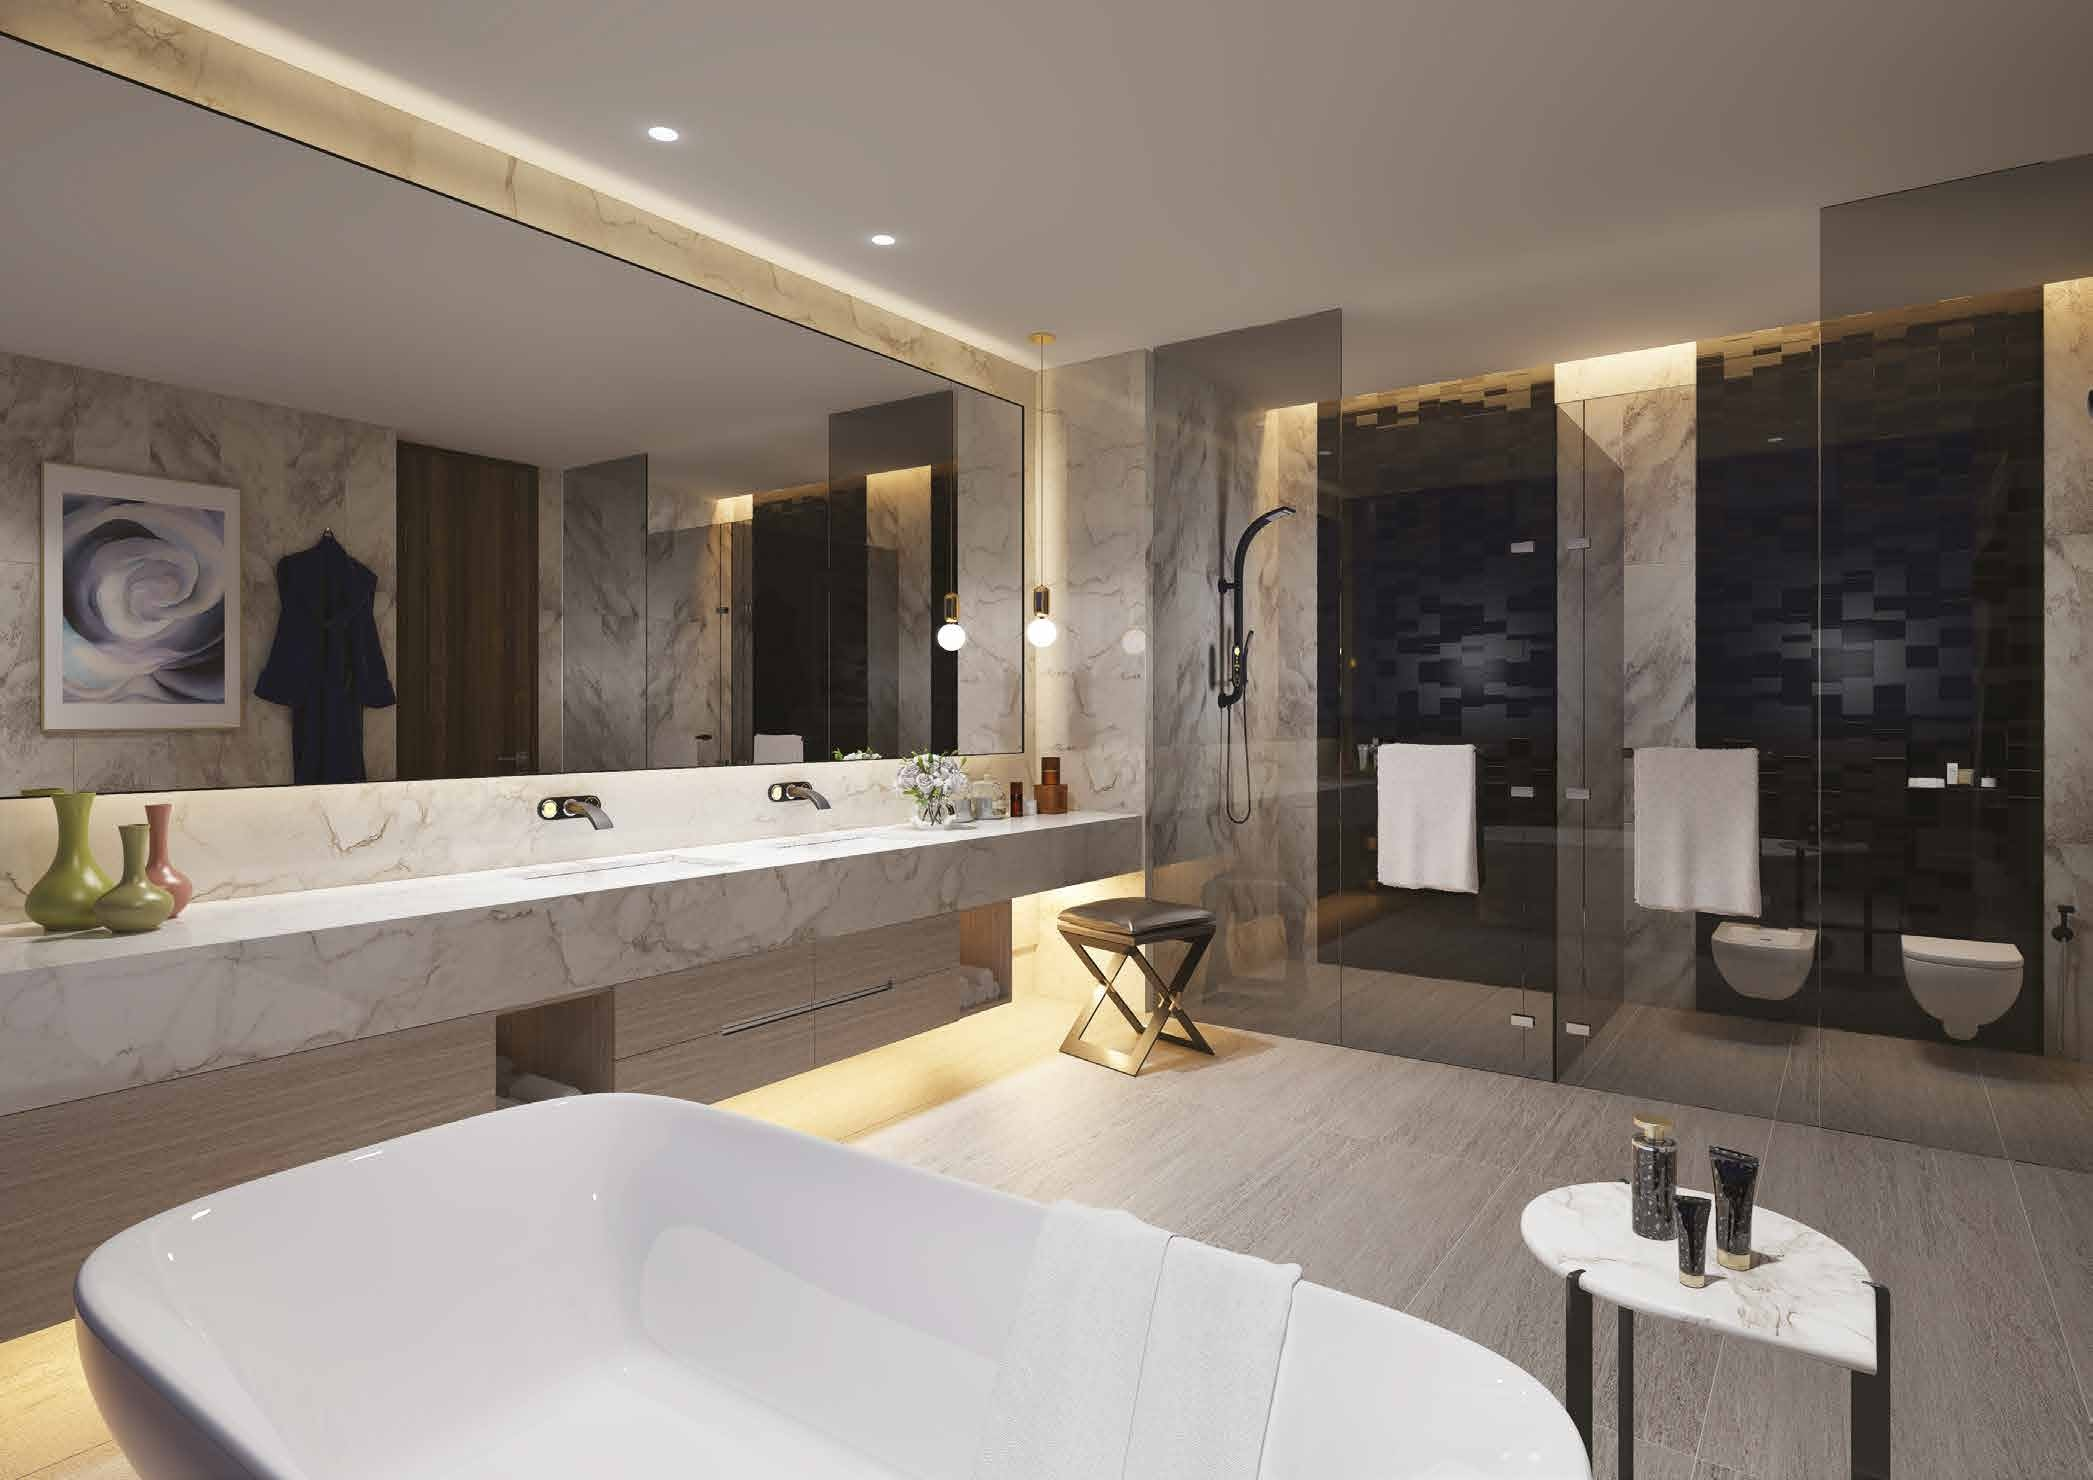 THE PENTHOUSE MASTER BATHROOM